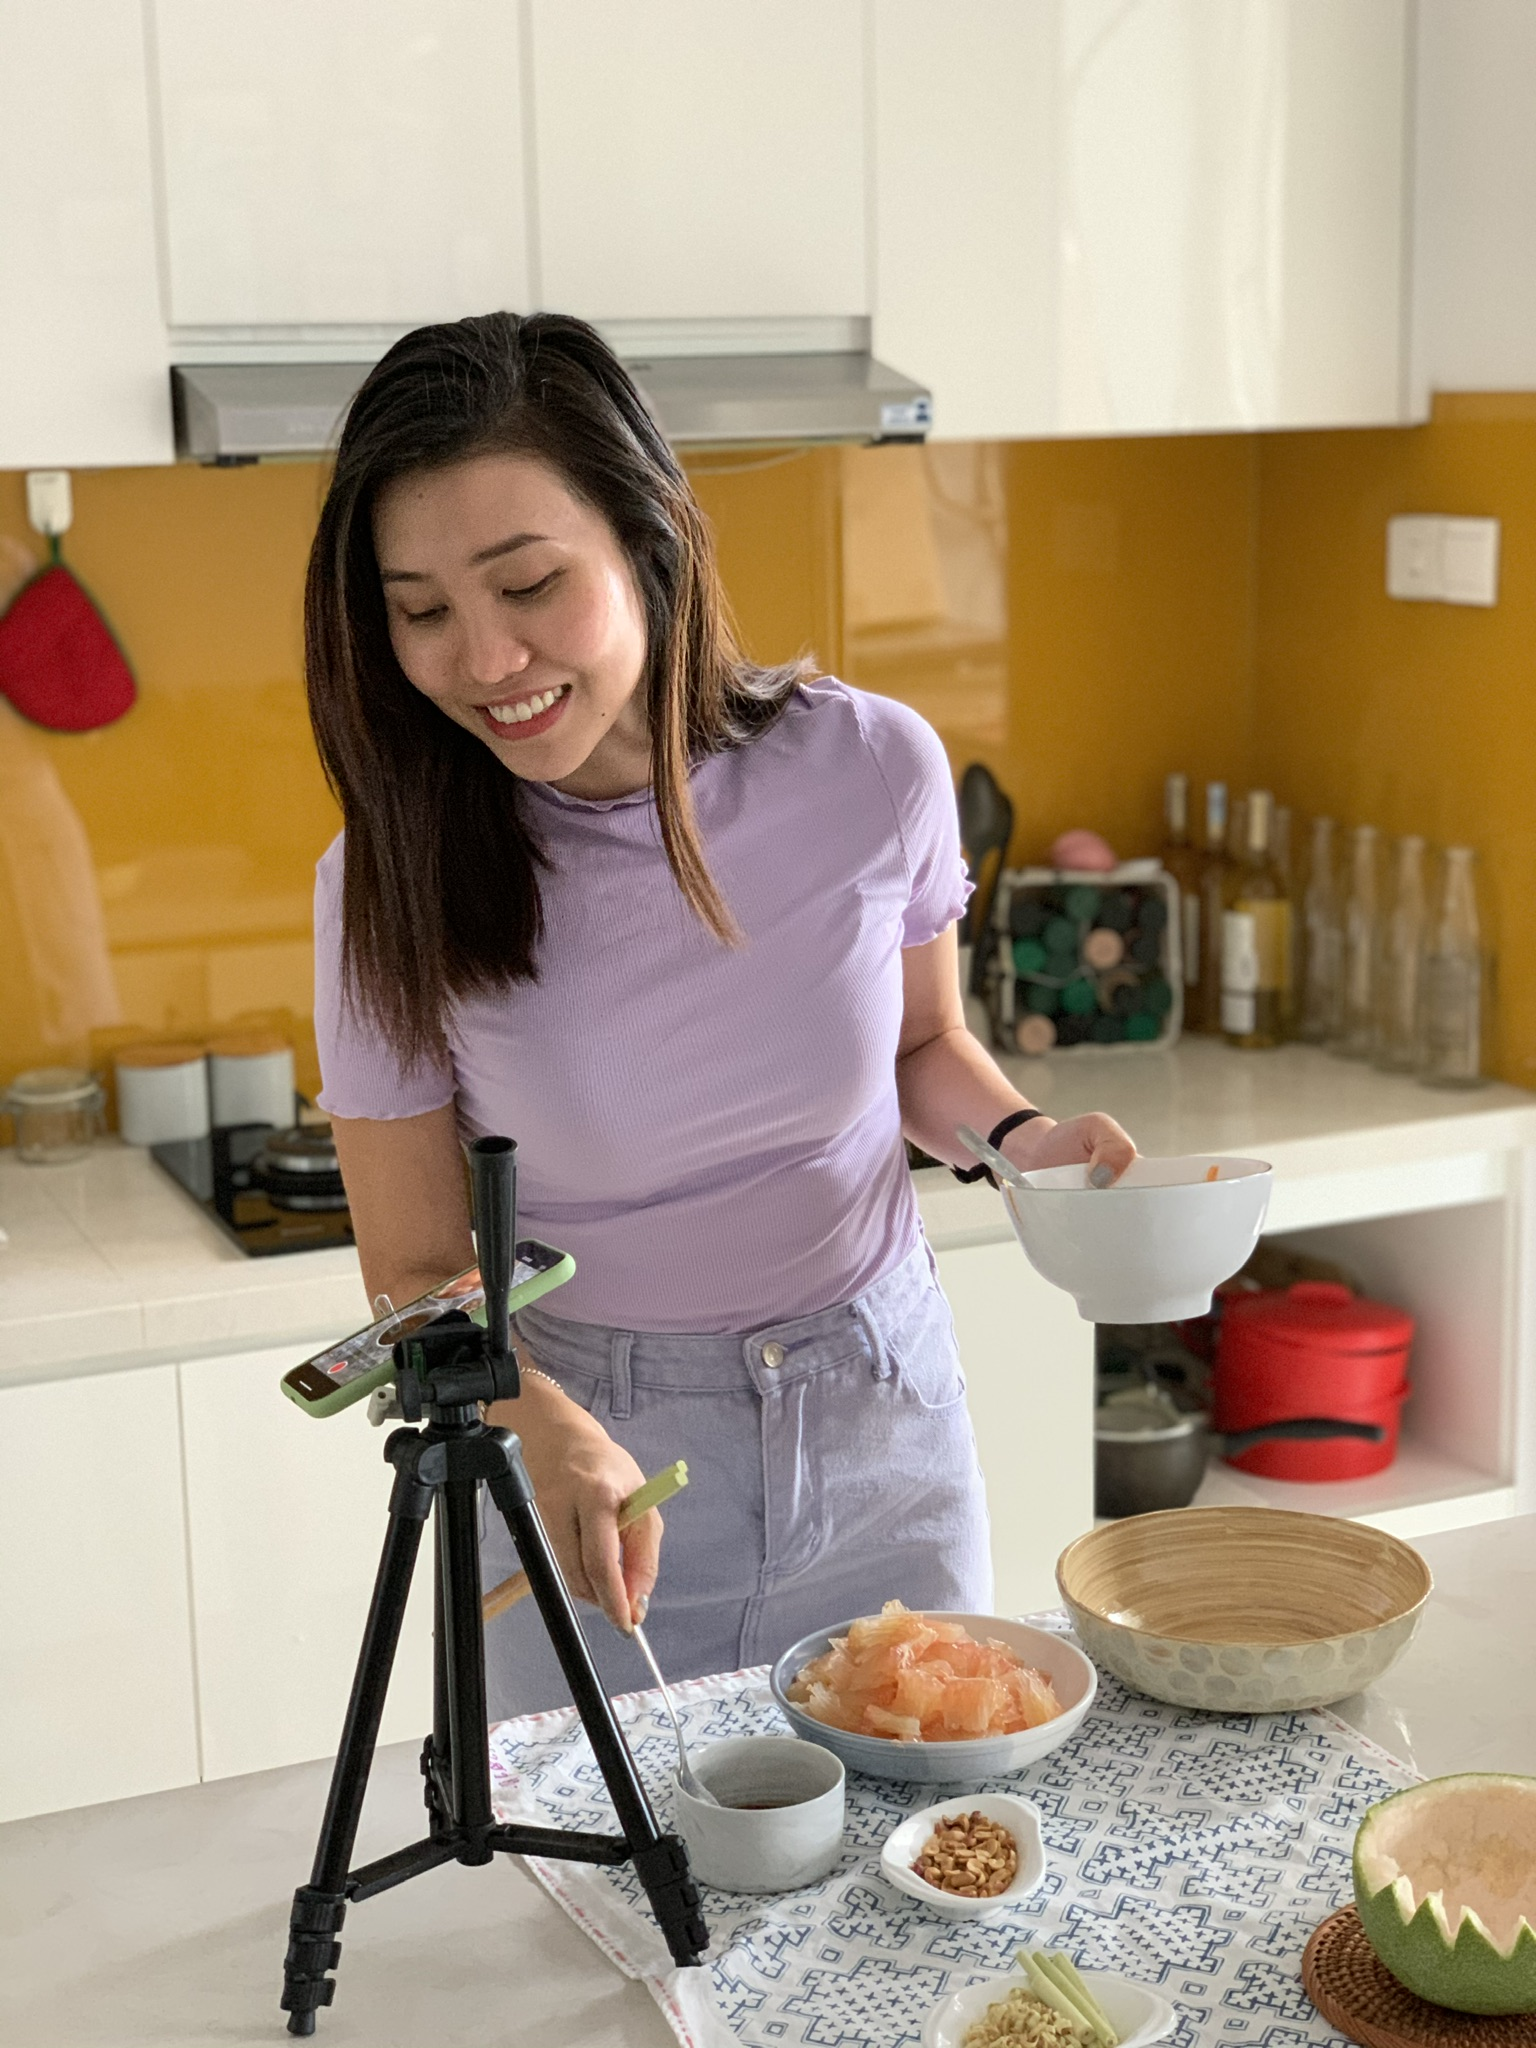 Nguyen Ho Tra My filming a TikTok cooking video.